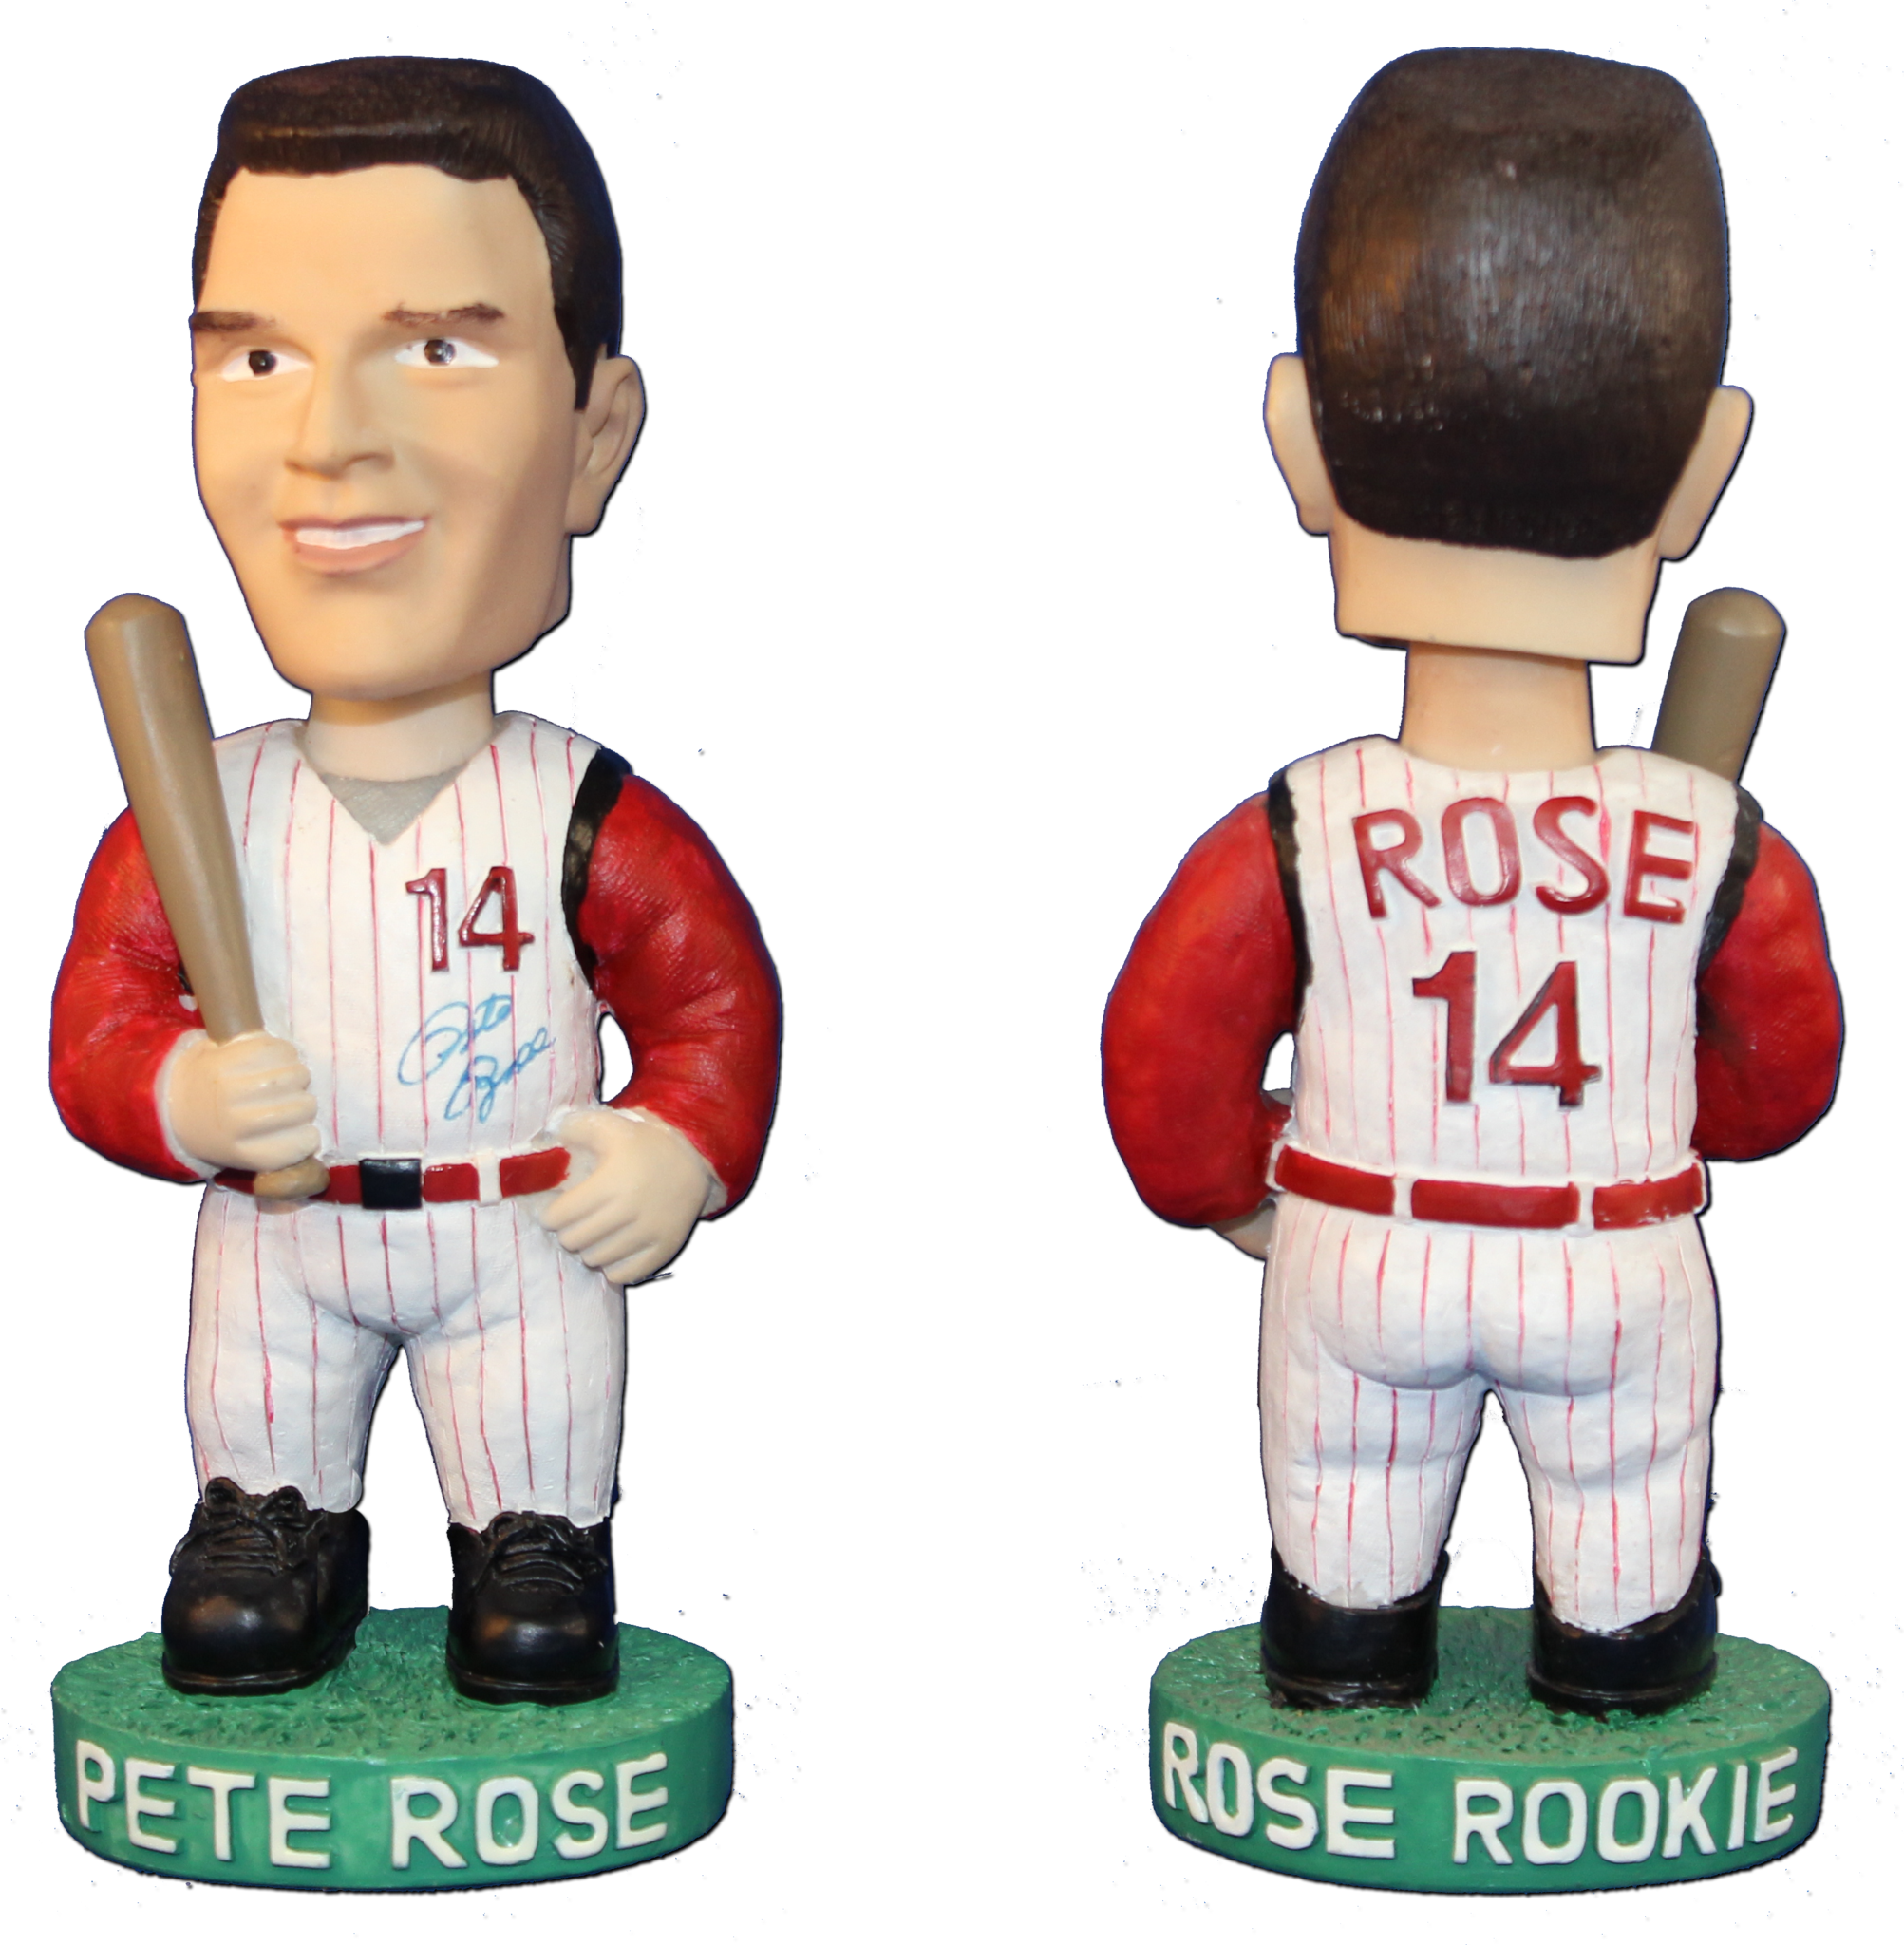 PeteRoseRookieBobble